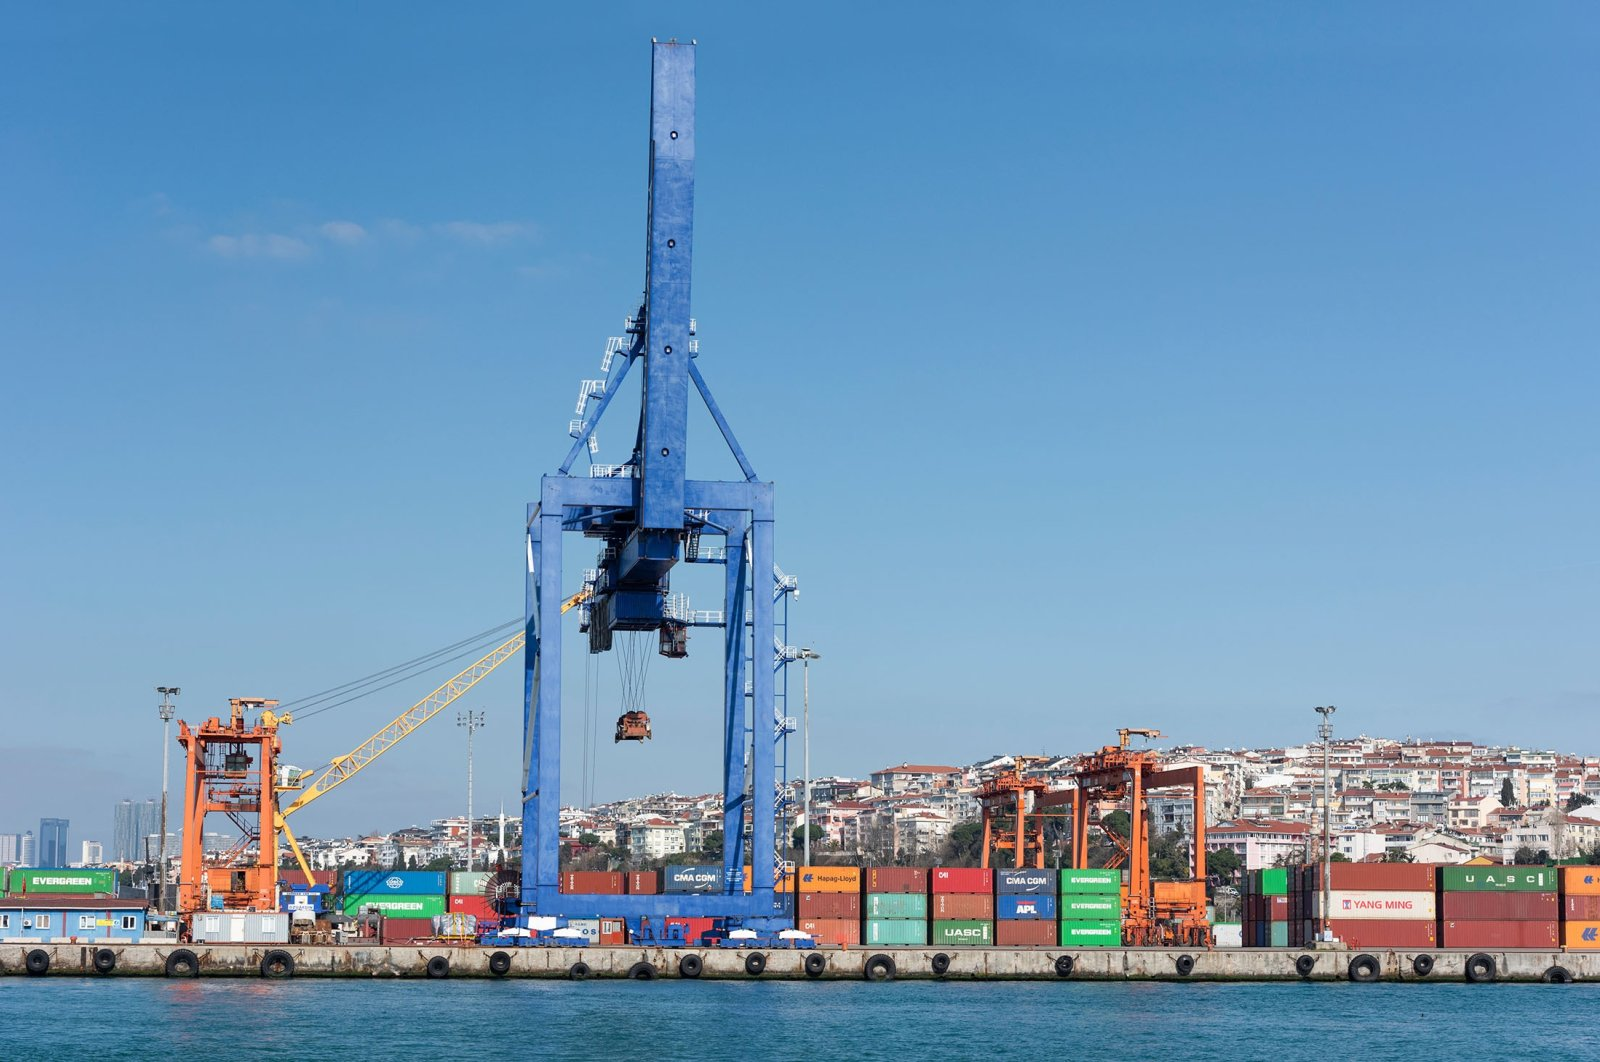 A container terminal at the port of Haydarpaşa in Kadıköy, Istanbul, Turkey, April 22, 2021. (Shutterstock Photo)